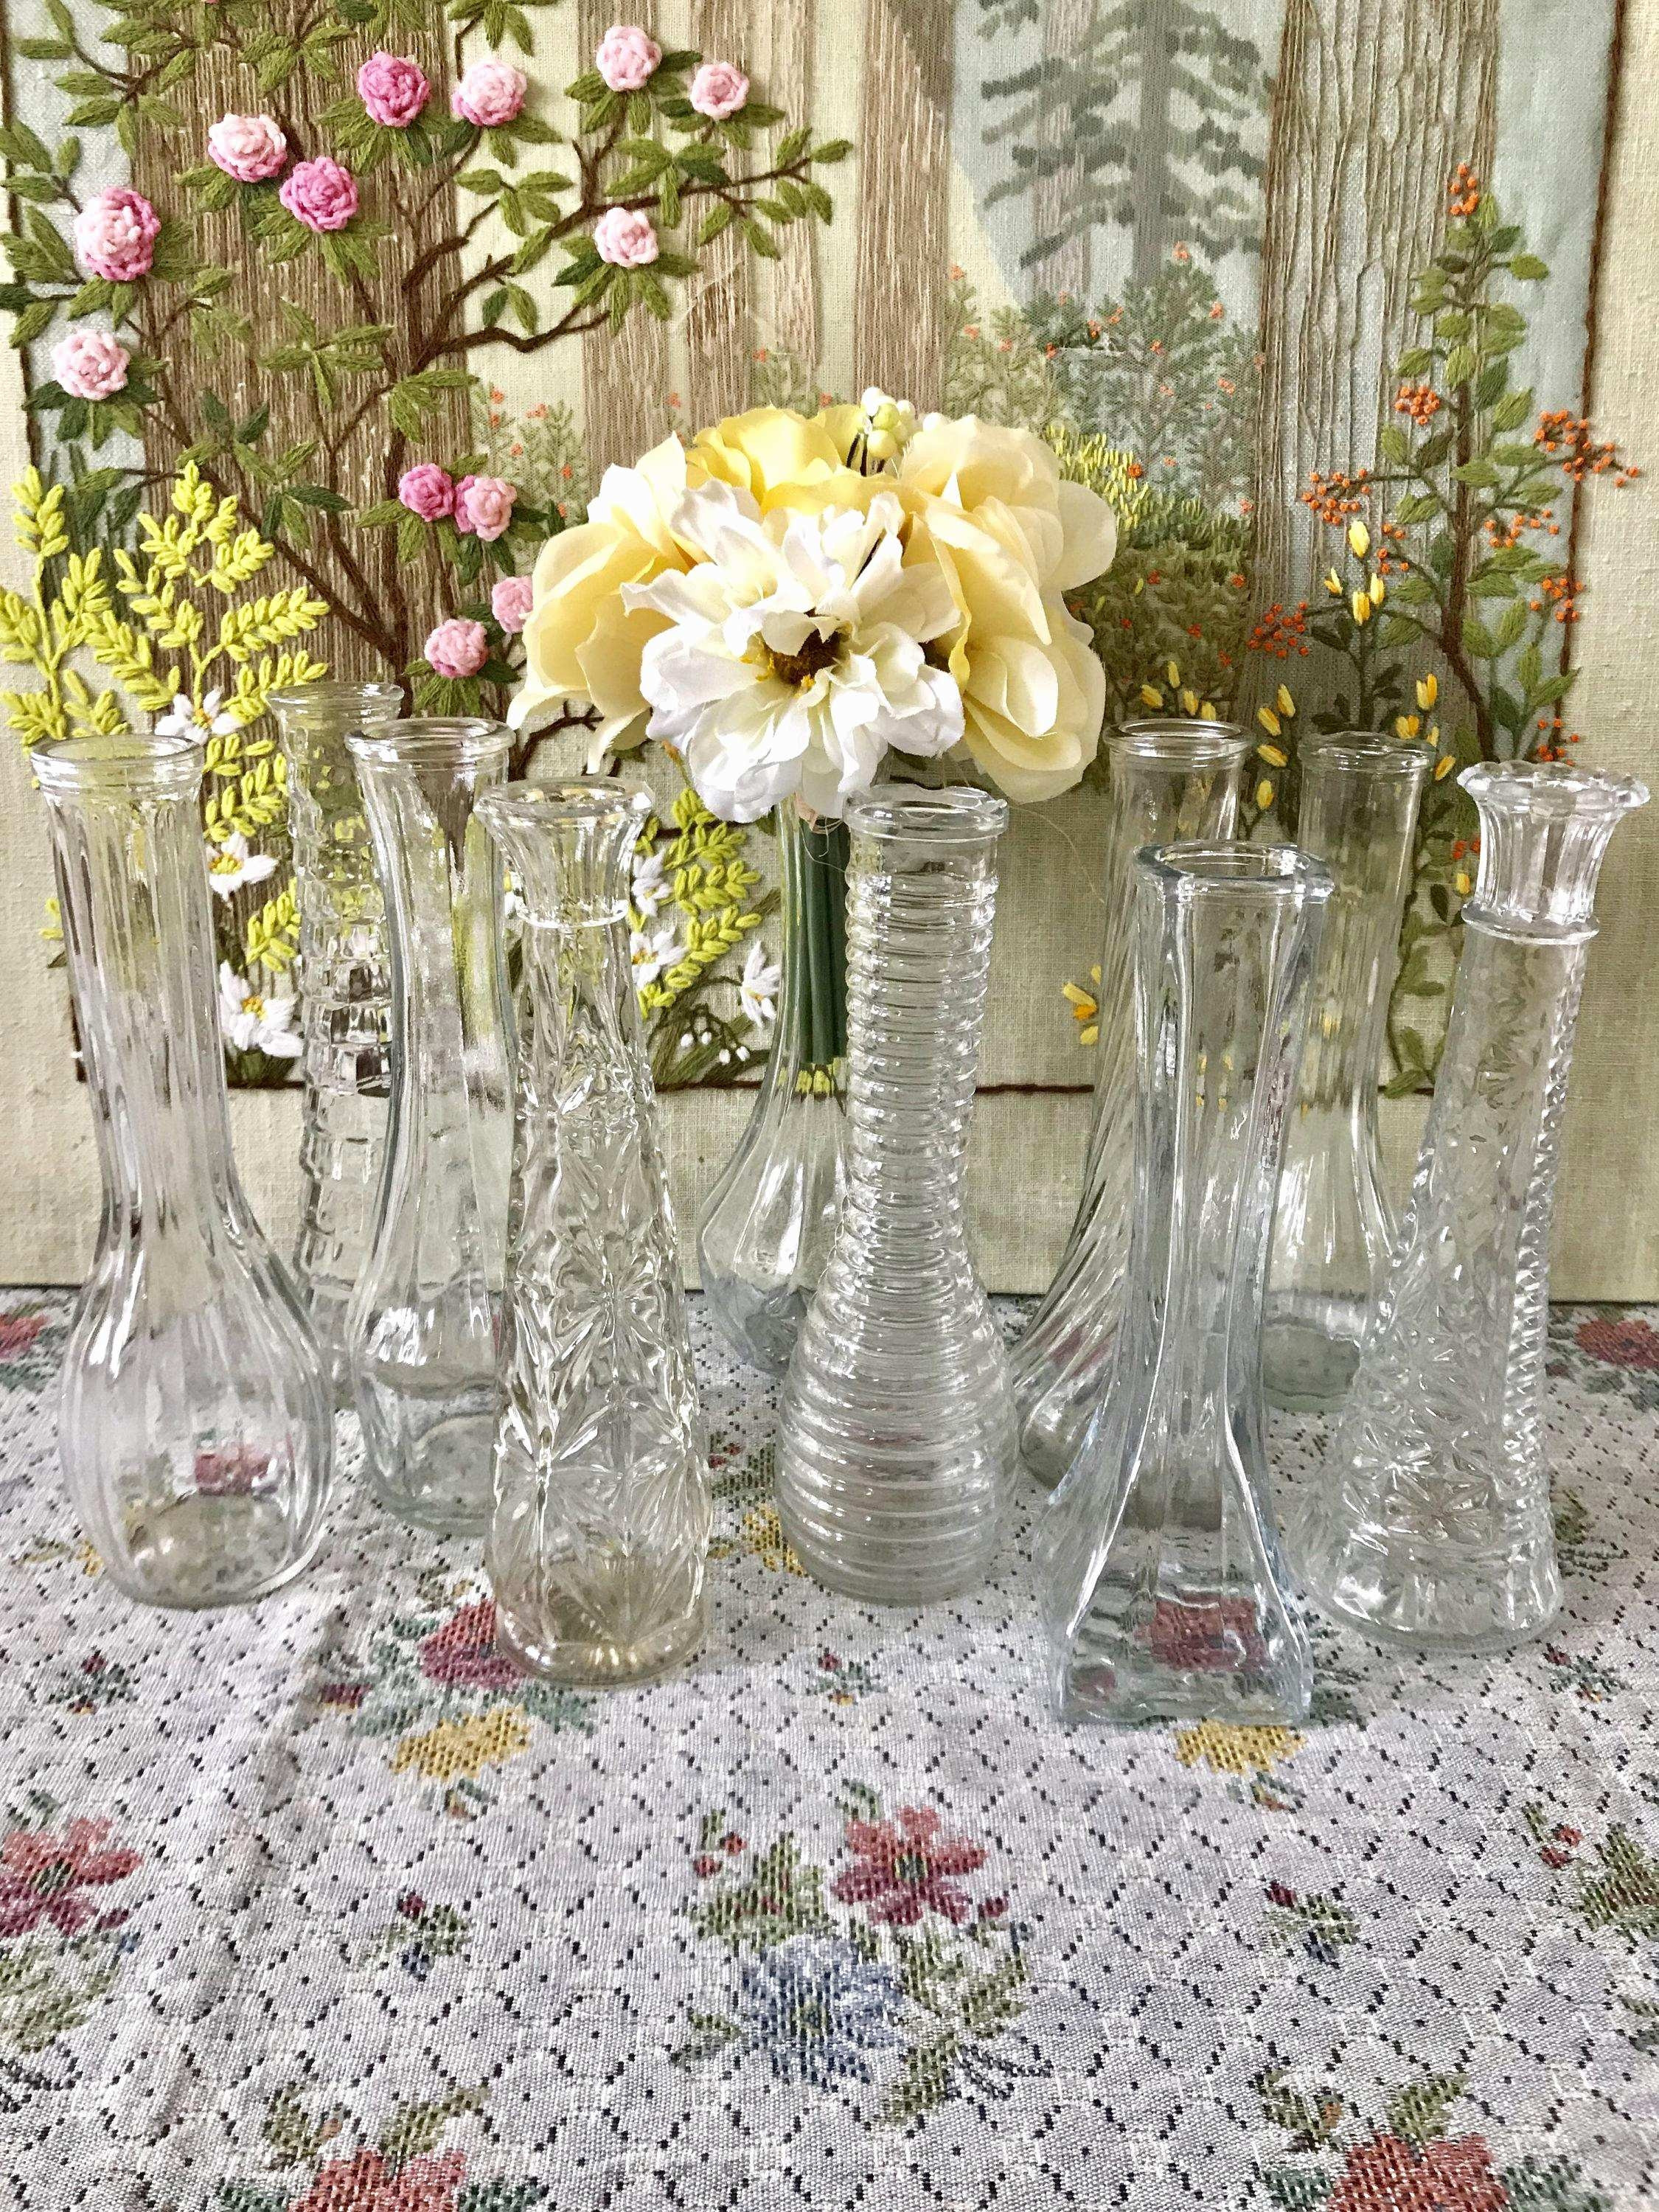 amazon clear glass vases of 41 awesome amazon wedding favors photograph 8350 with amazon wedding favors inspirational wedding decorations at amazon image collections wedding dress image of 41 awesome